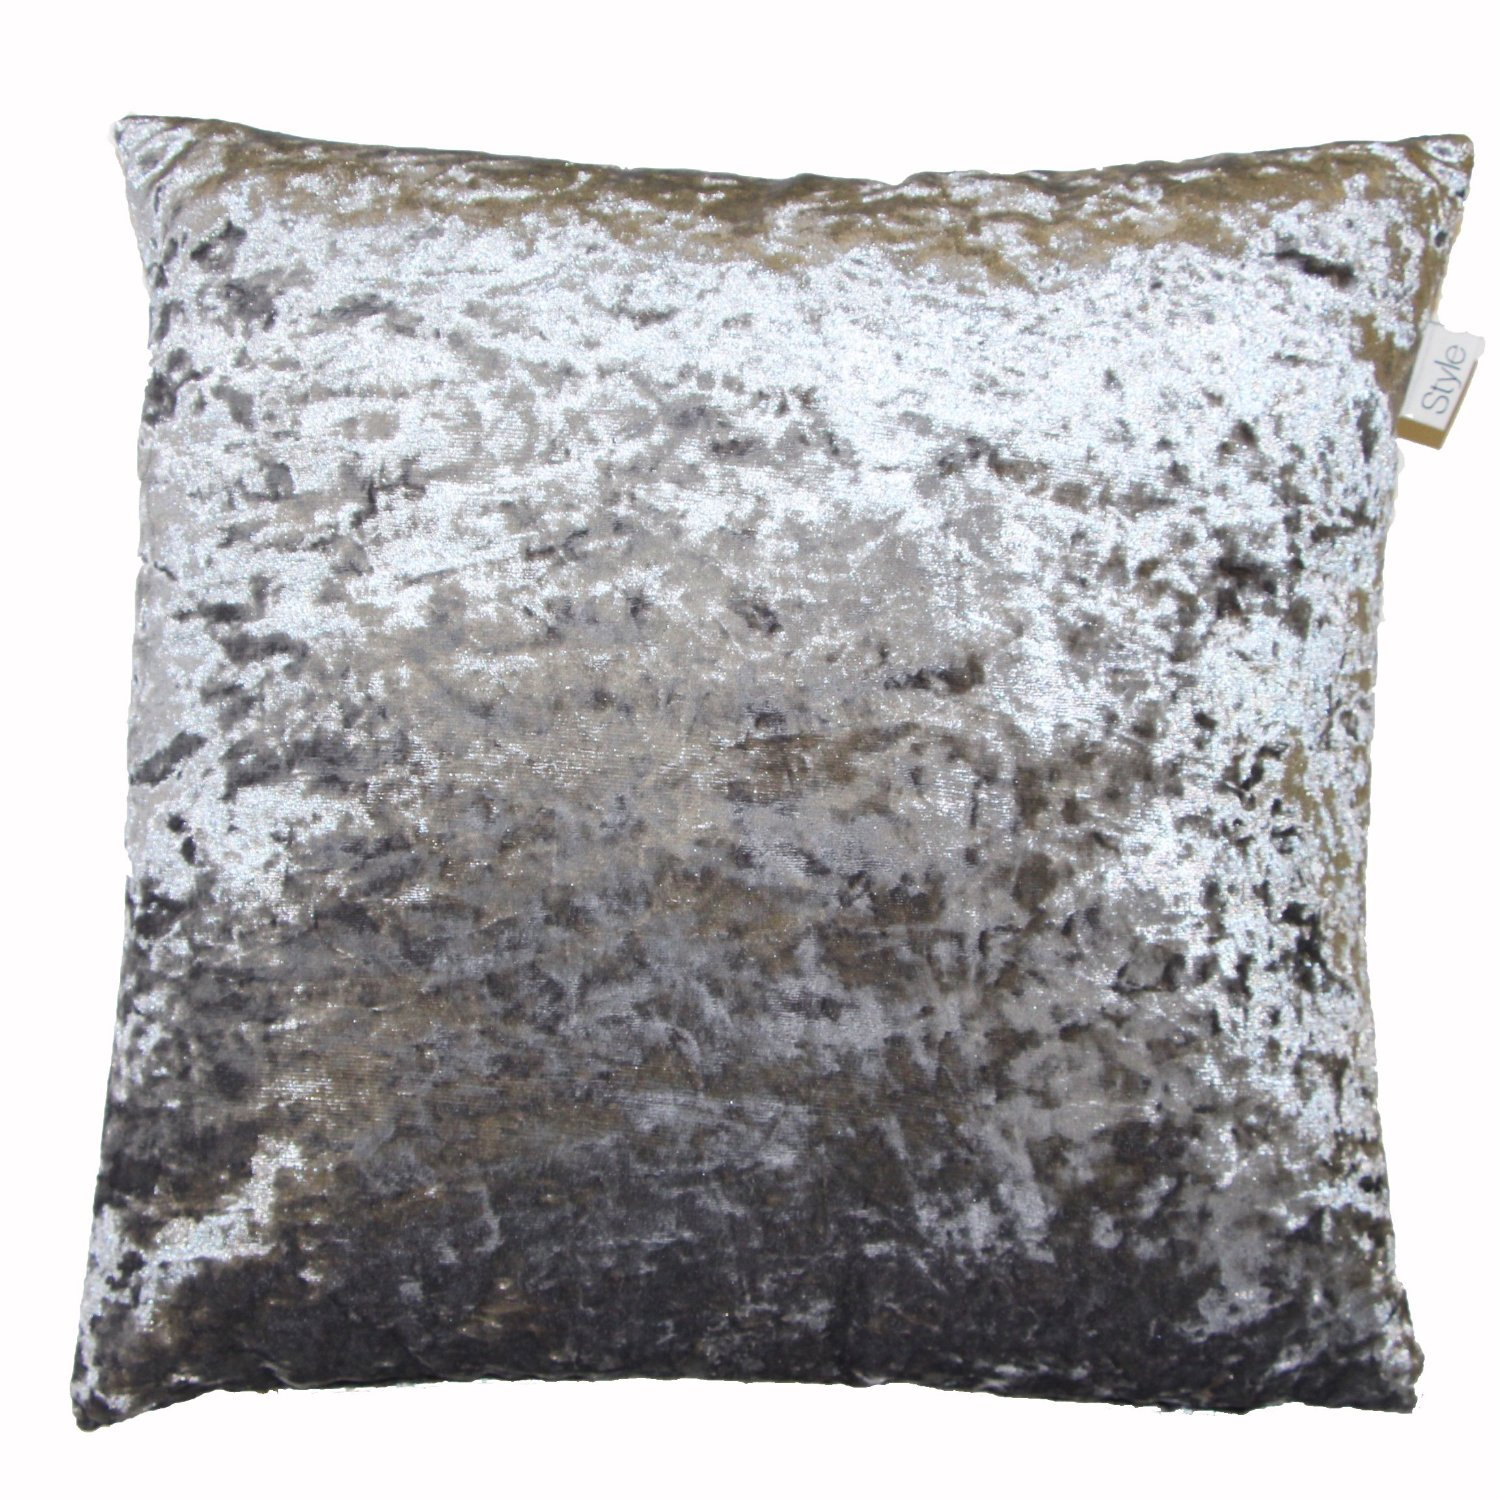 "LUXURIOUS VELVET CUSHION COVER SILVER GREY 17"" X 17"" 43cm x 43cm"